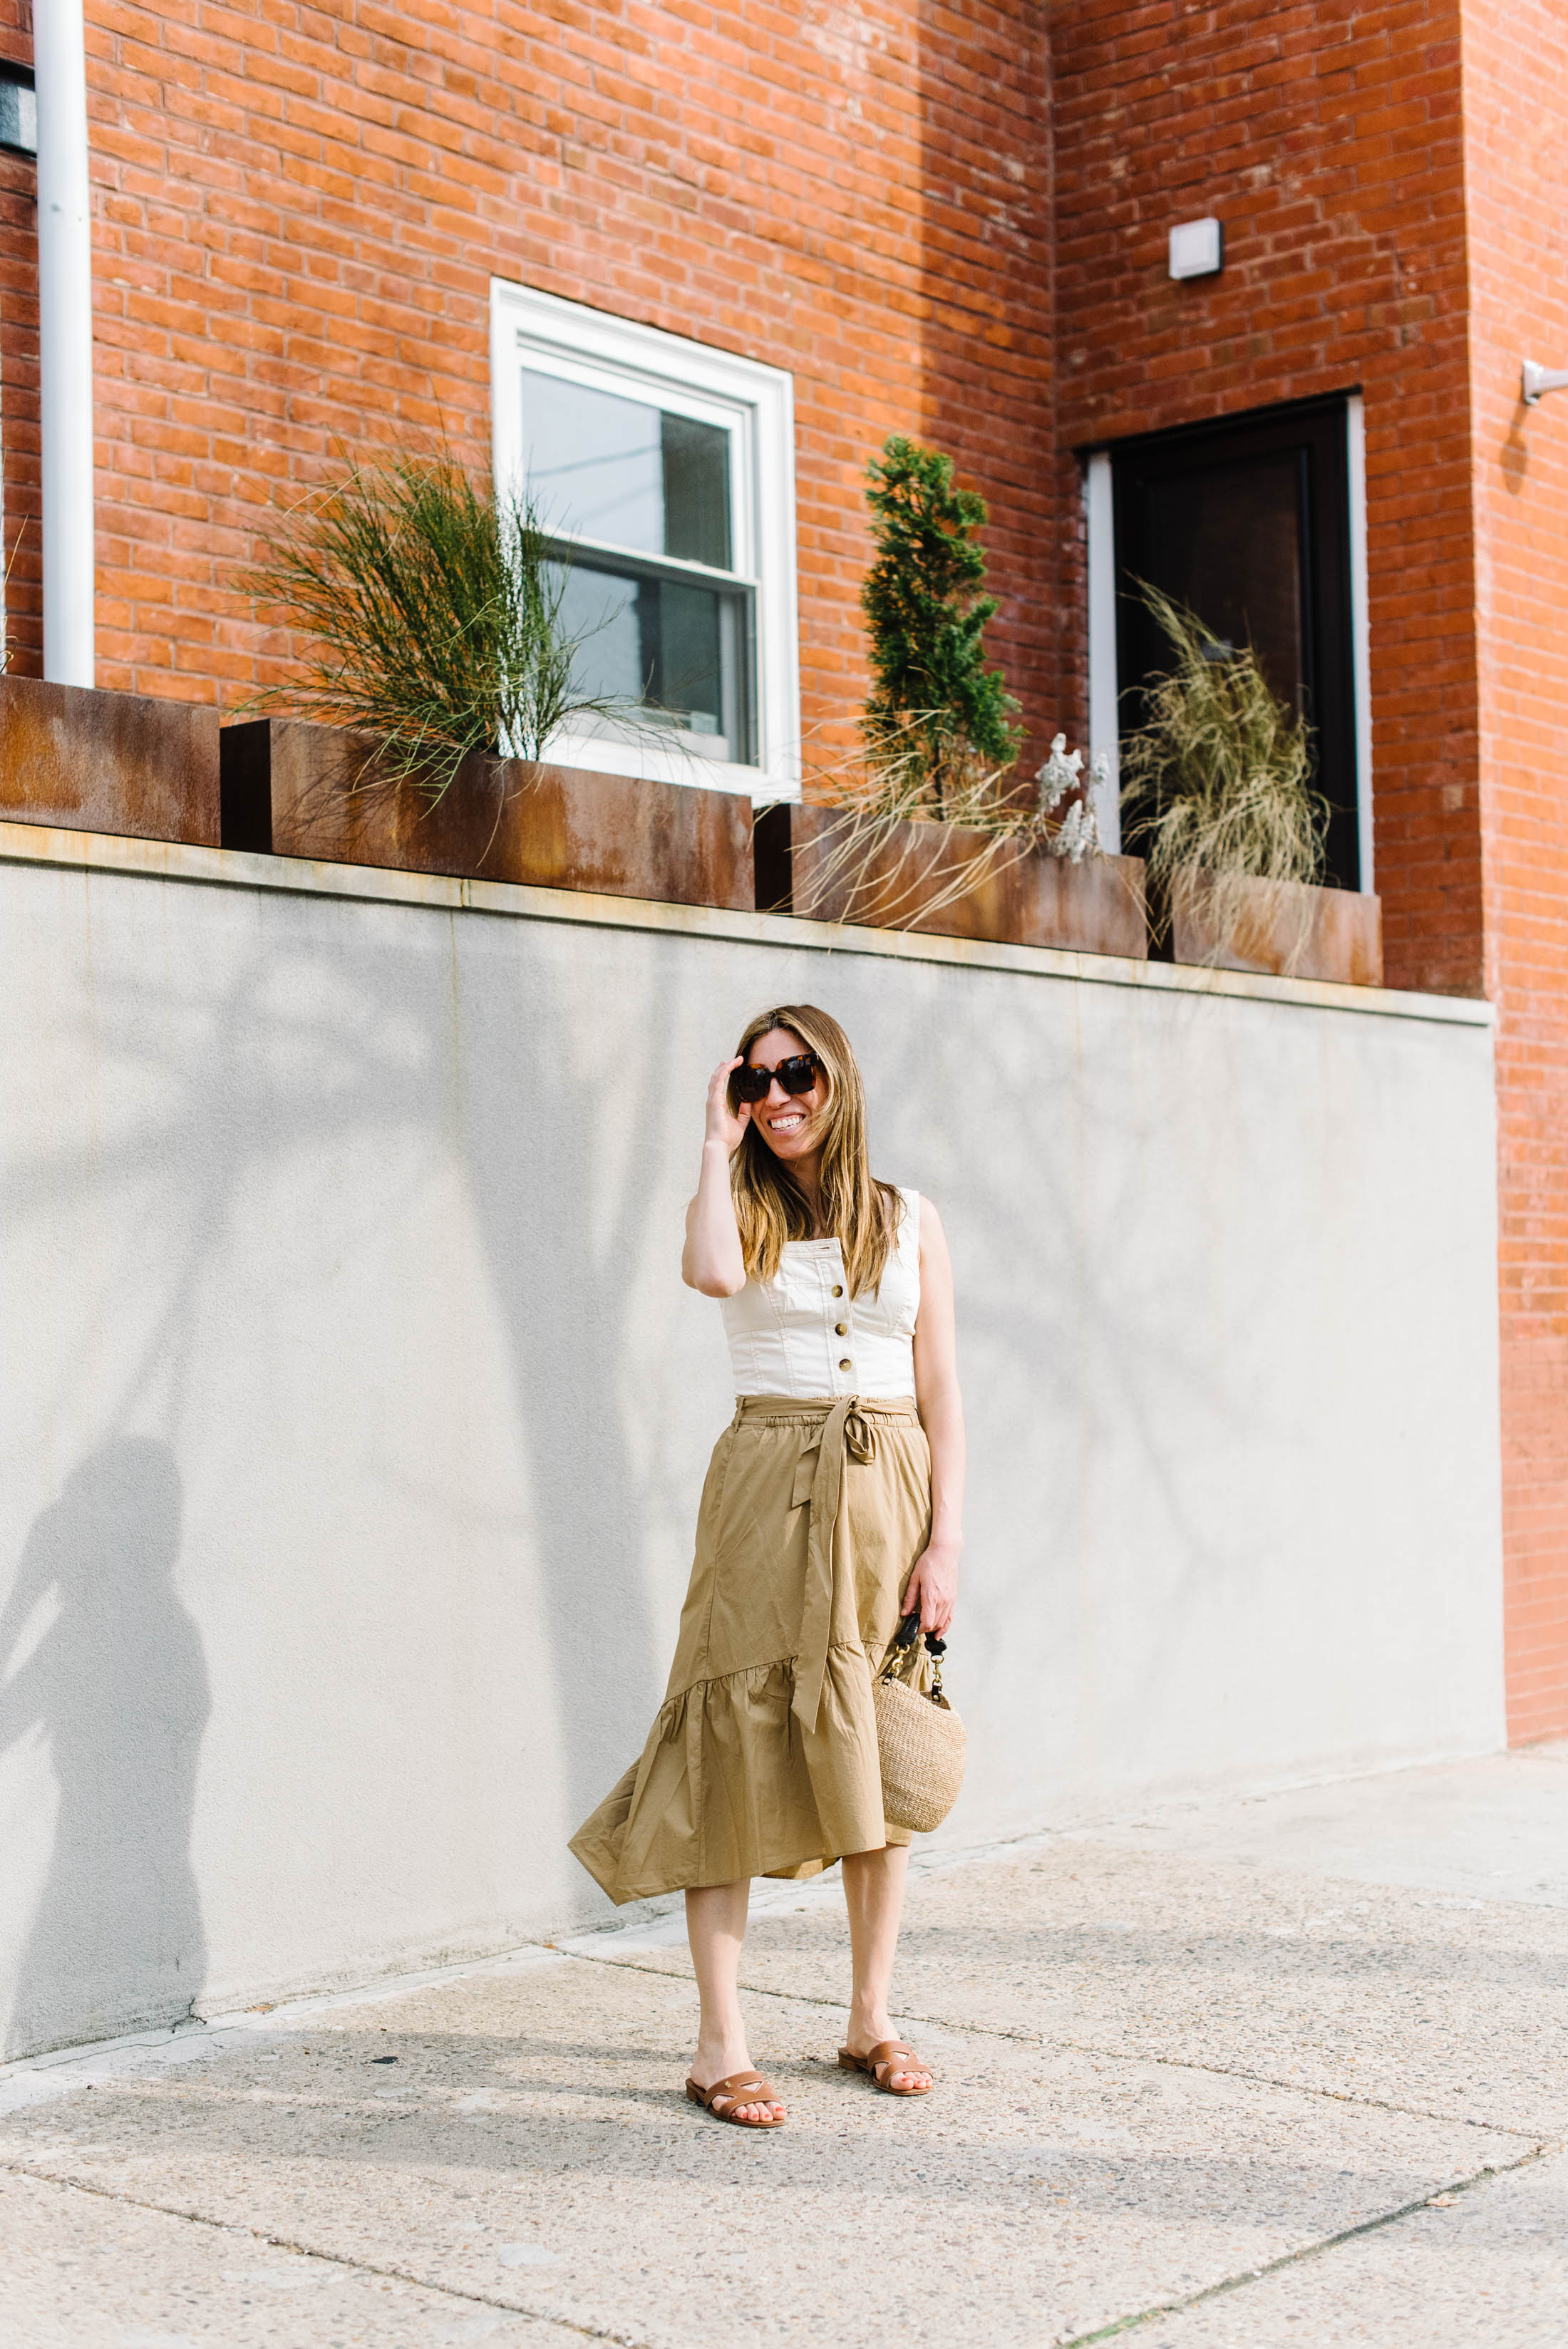 Gang, poplin fabric is having a moment. Bringing on serious khaki & 90s nostalgia, we've found the prettiest spring & summer pieces to satisfy the itch.